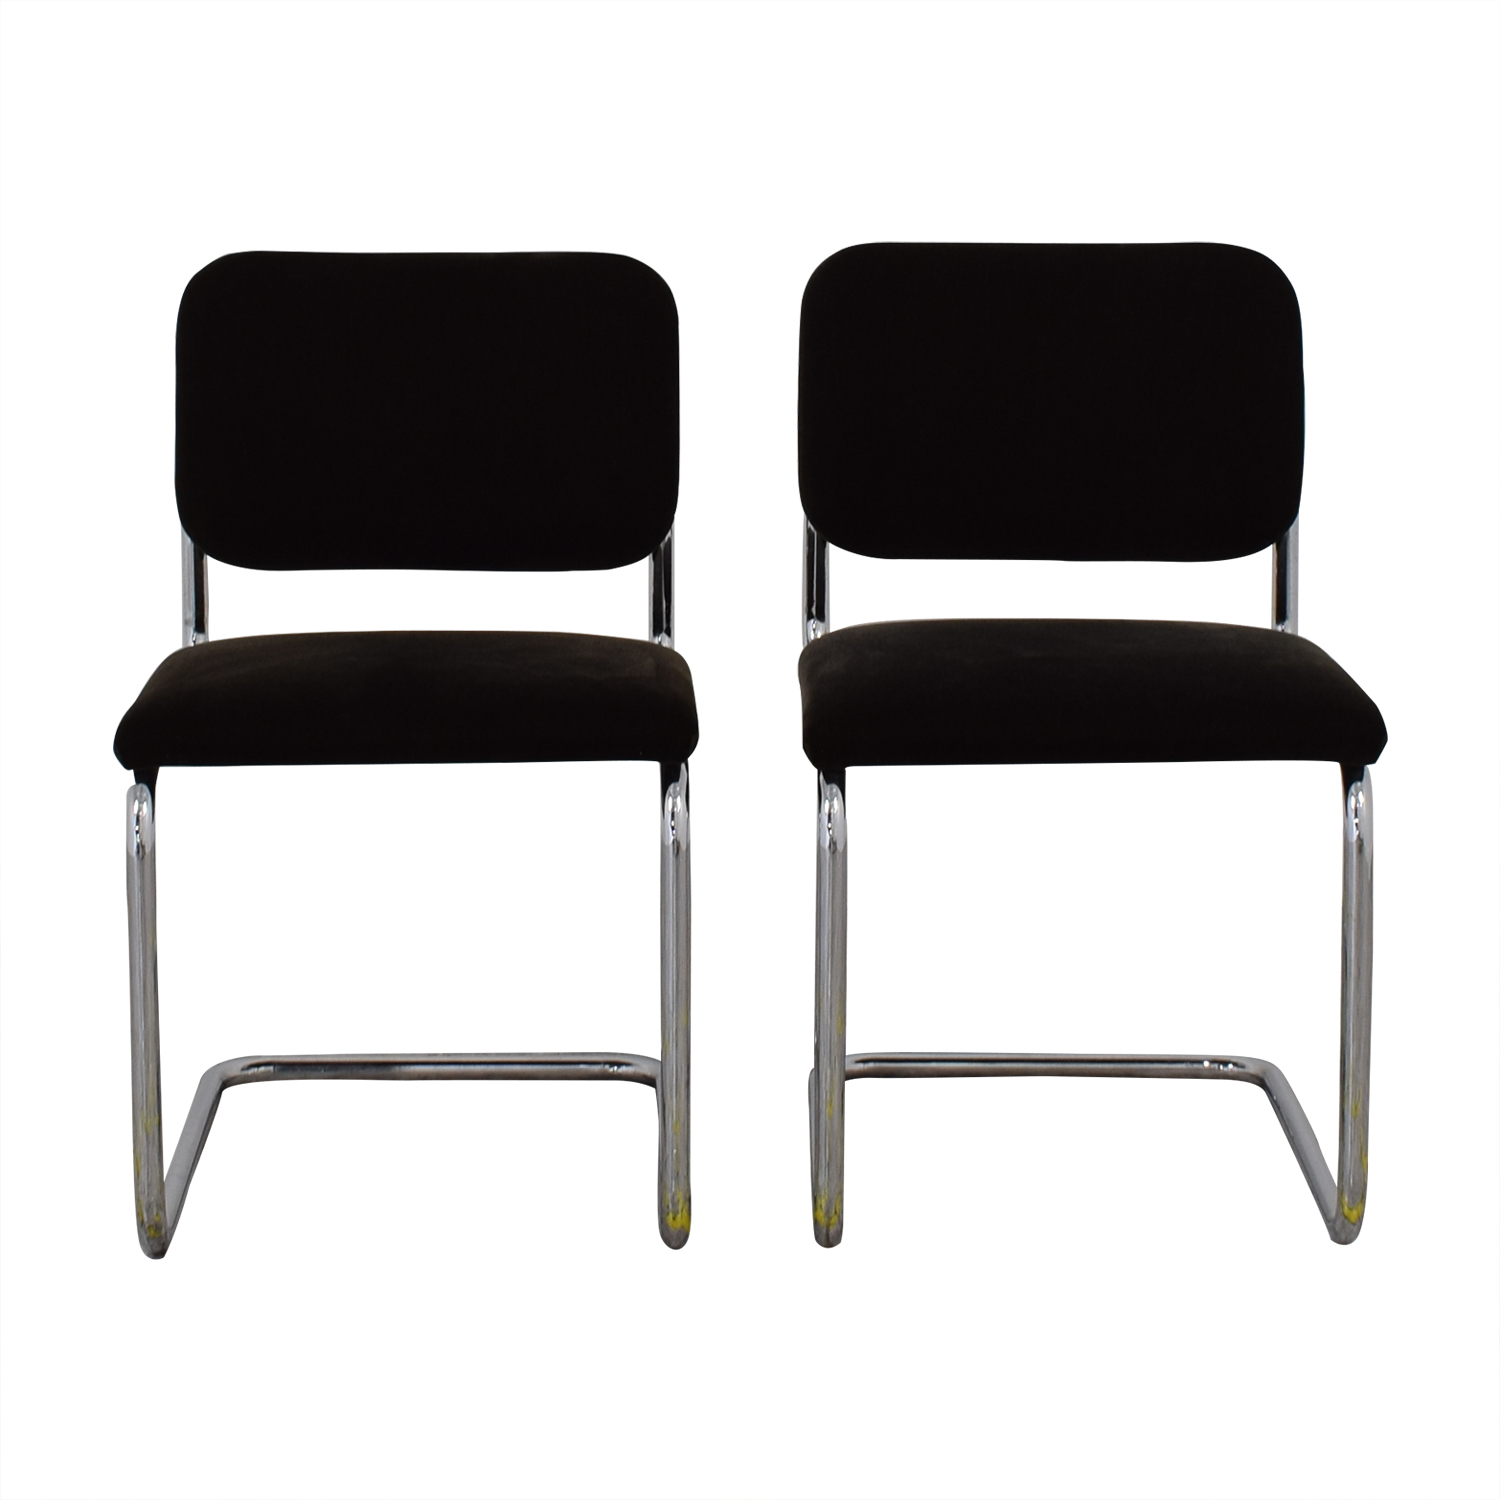 Knoll Knoll Marcel Breuer Cesca Chairs Chairs